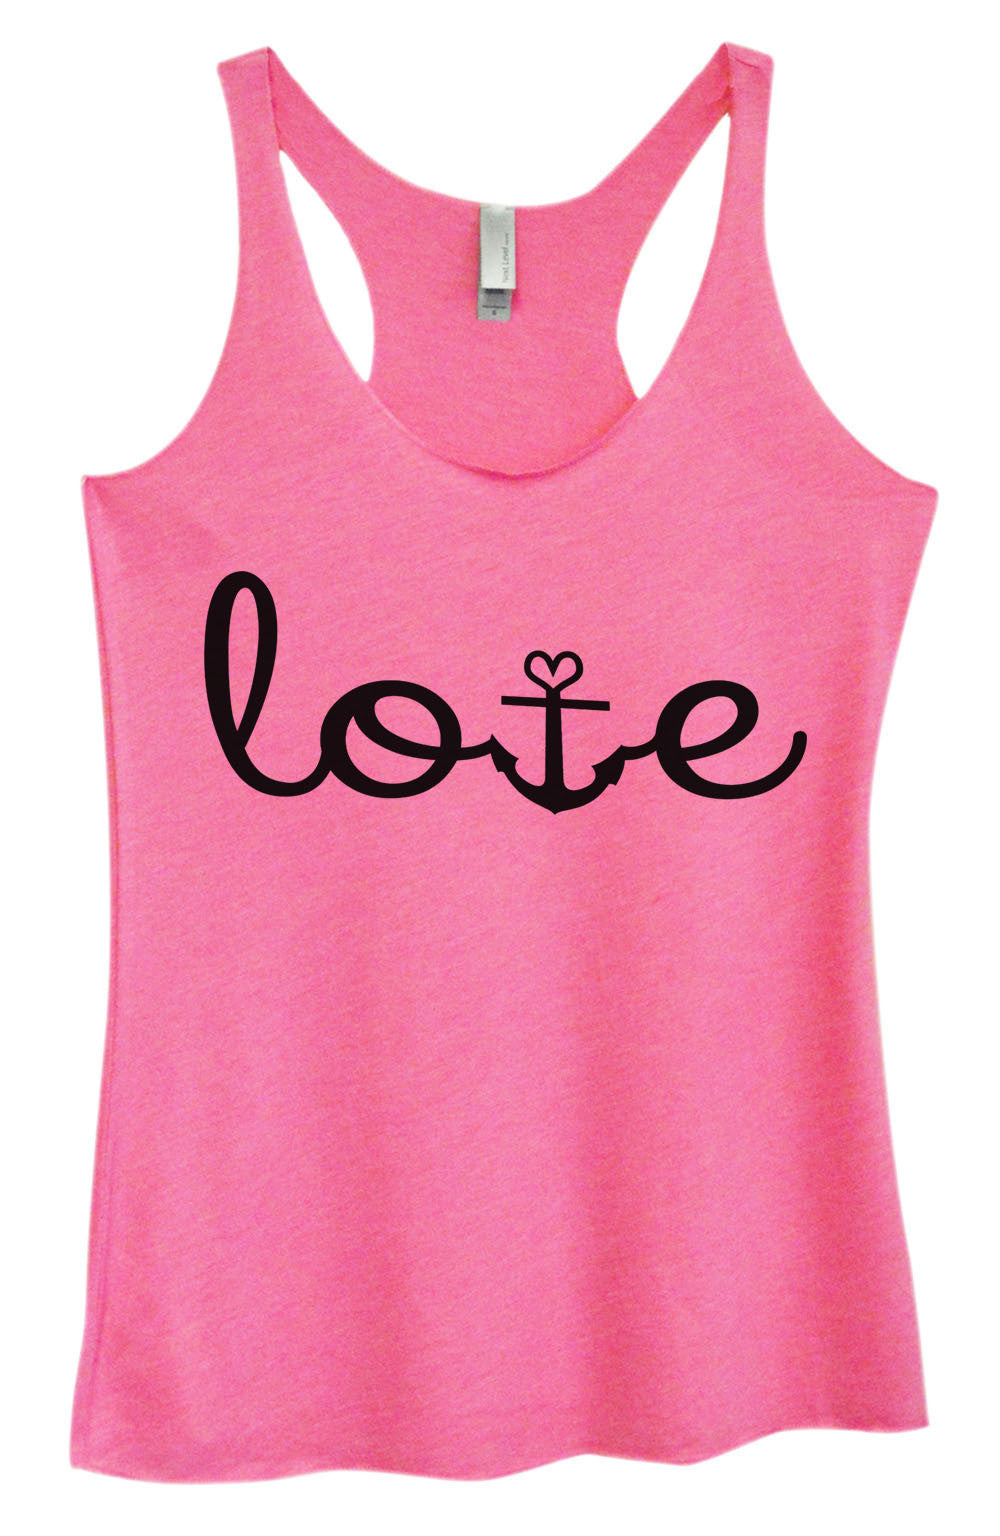 Womens Fashion Triblend Tank Top - Love - Tri-935 - Funny Shirts Tank Tops Burnouts and Triblends  - 4